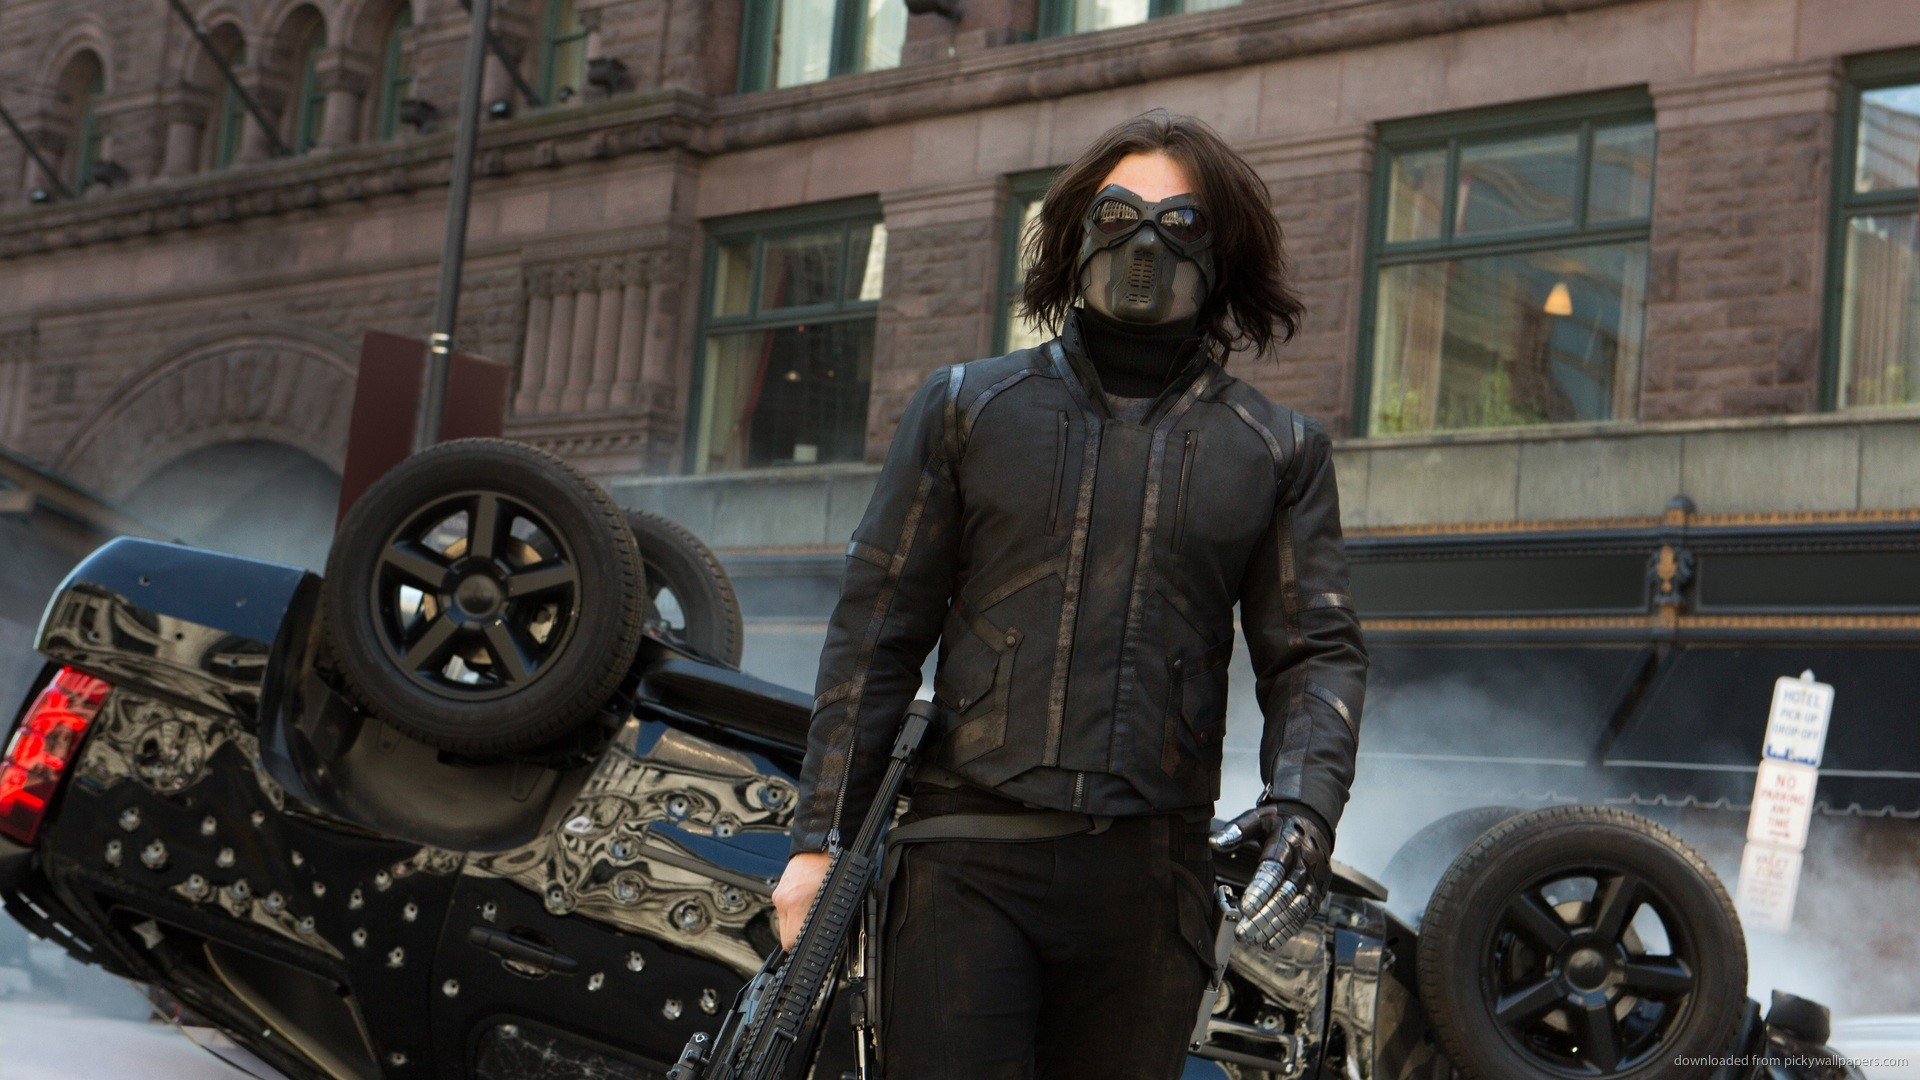 Winter Soldier Walking Away picture